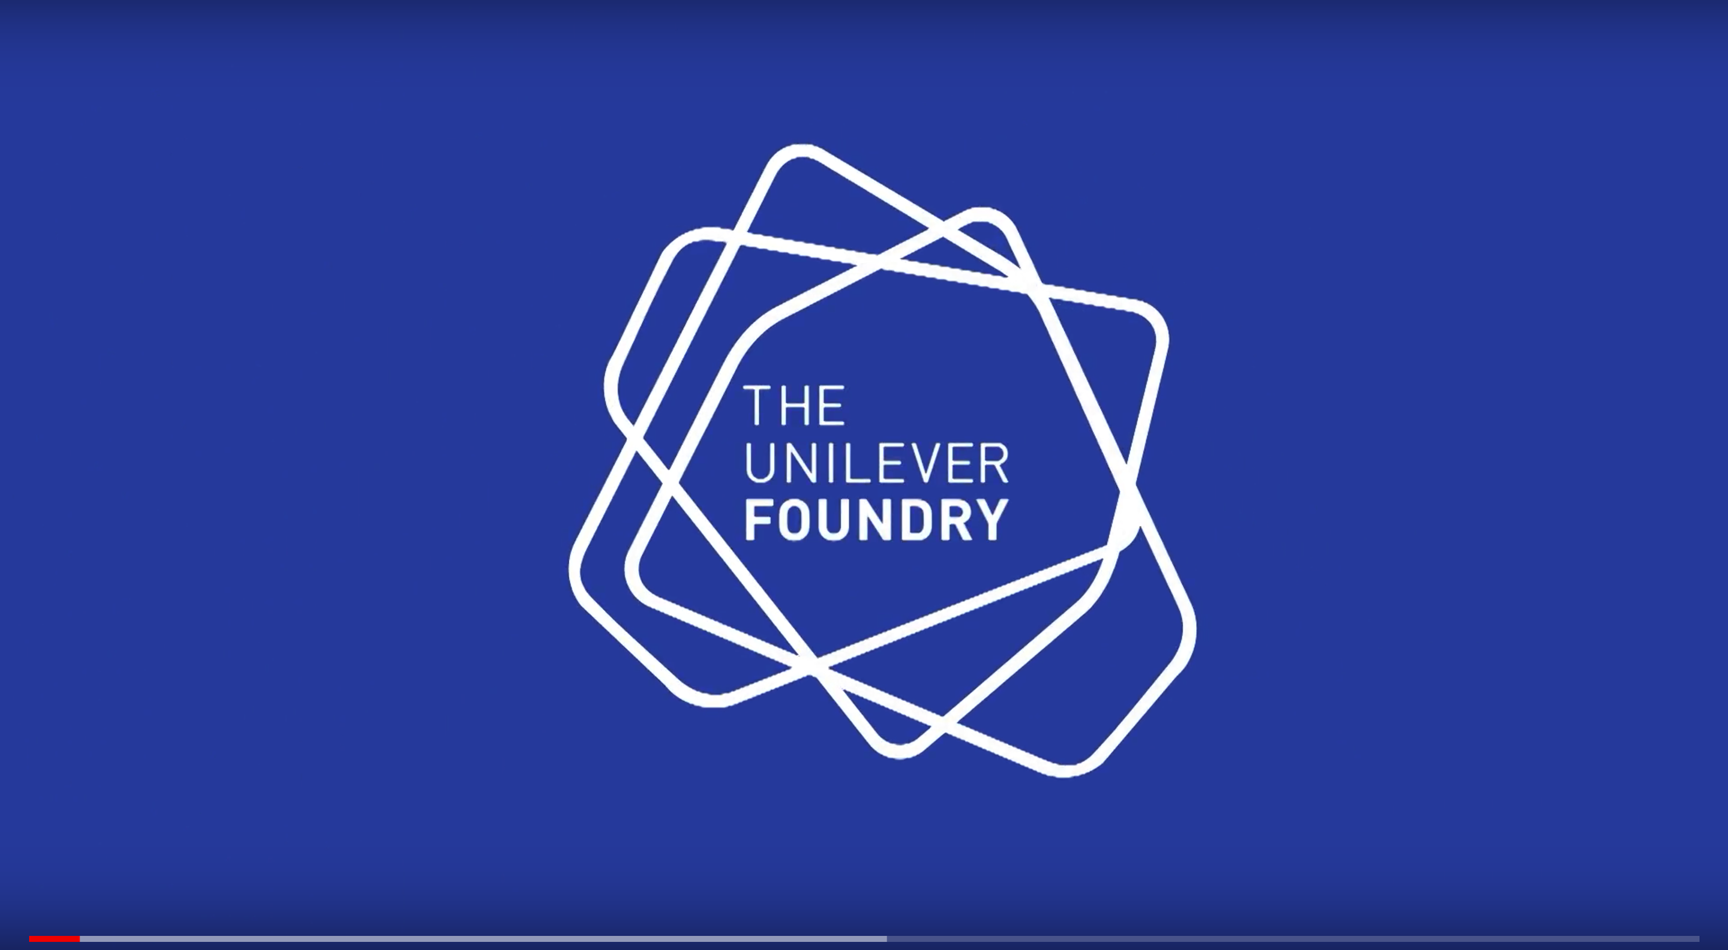 Unilever Foundry's mini-documentary of Relative Insight